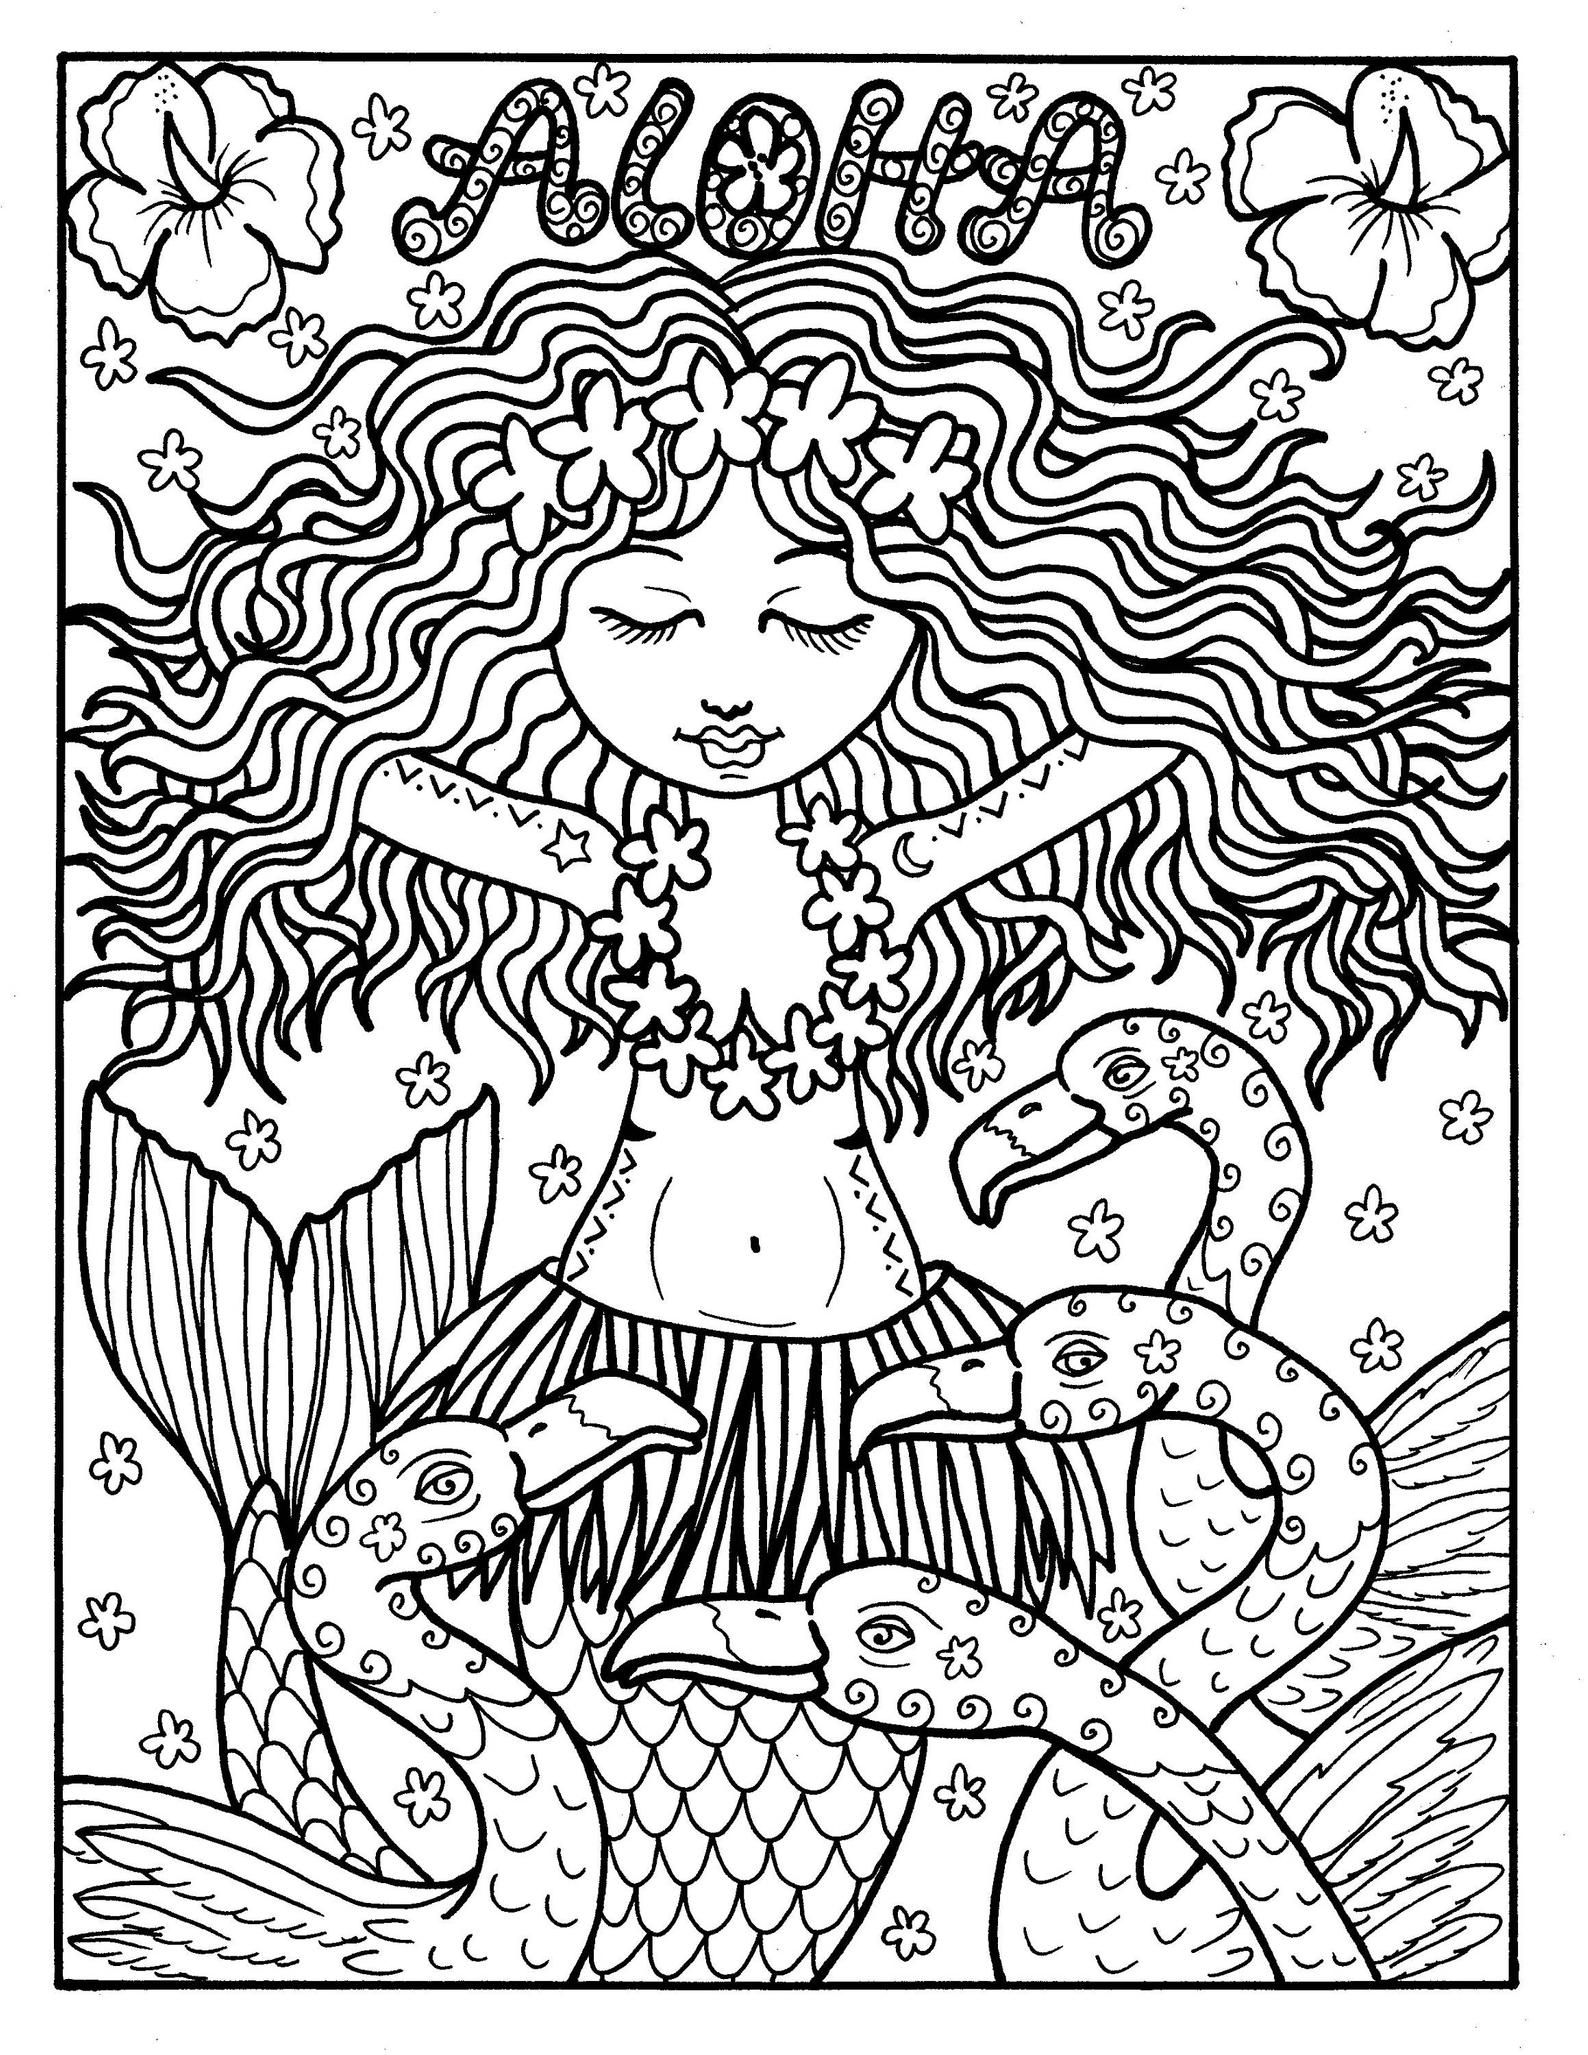 5 Pages Gigital Coloriage Instant Download 5 Photos Tiki Bar Etsy Mermaid Coloring Pages Whimsical Art Coloring Pages [ 2055 x 1588 Pixel ]